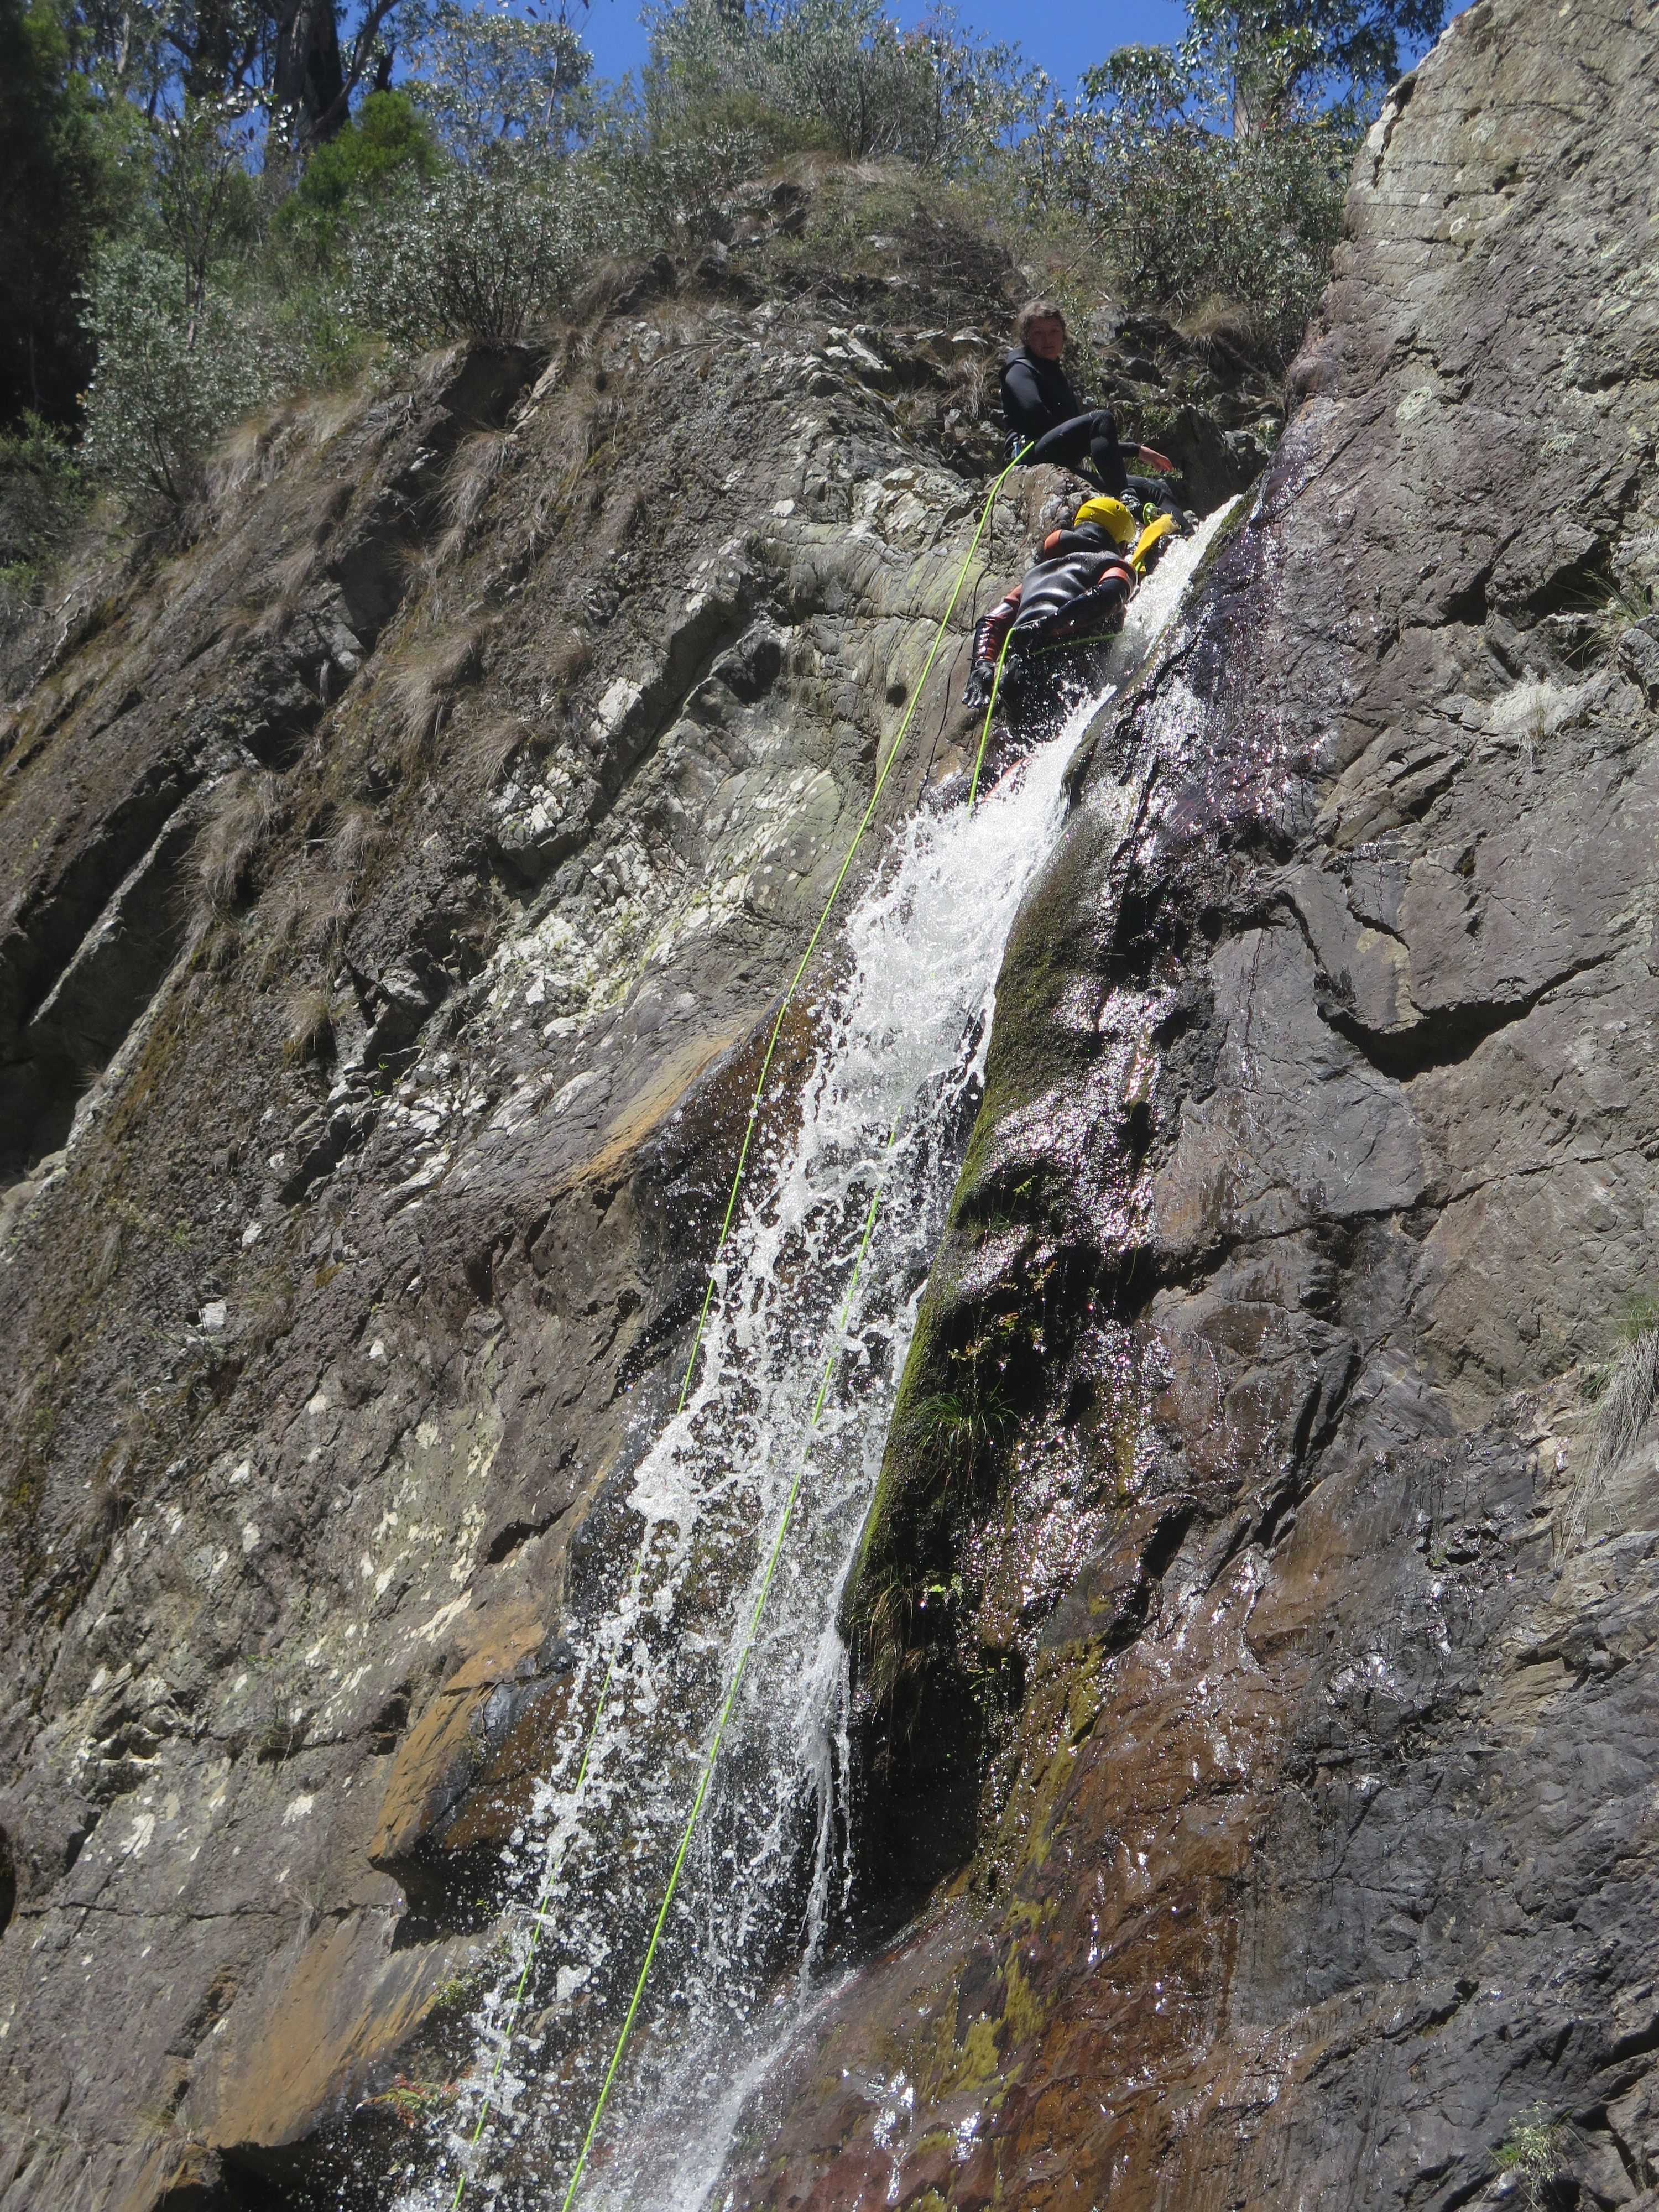 13. Cliff climbing with fall